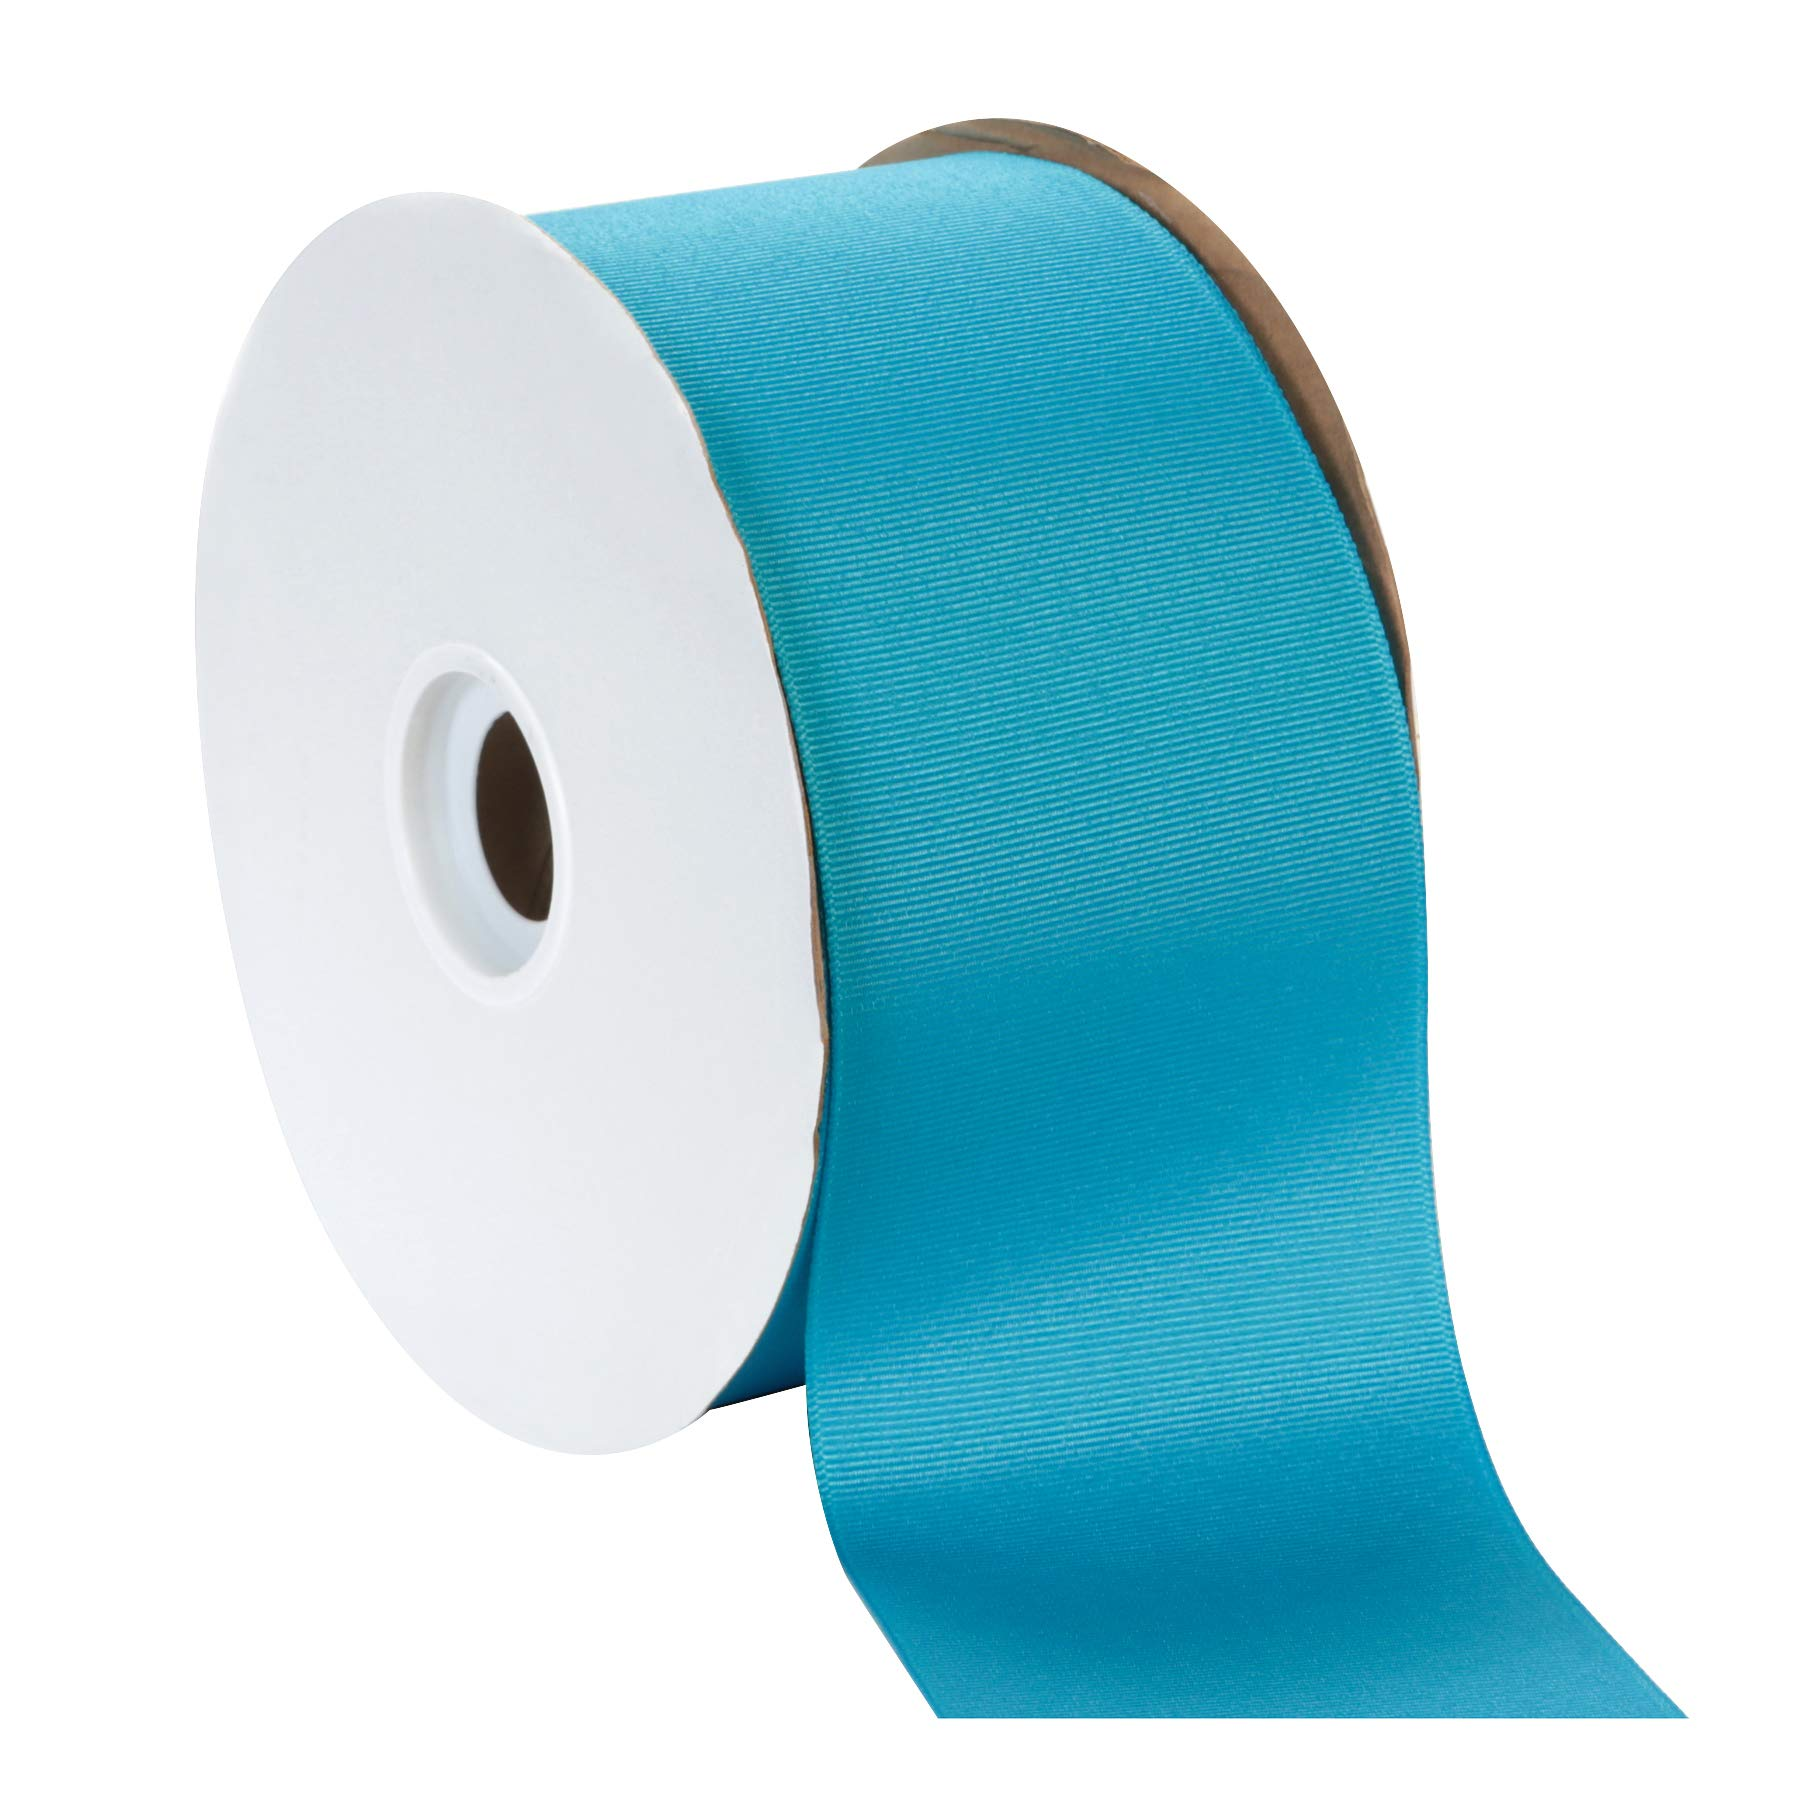 Berwick Offray 3'' Grosgrain Ribbon, Turquoise Blue, 50 Yards